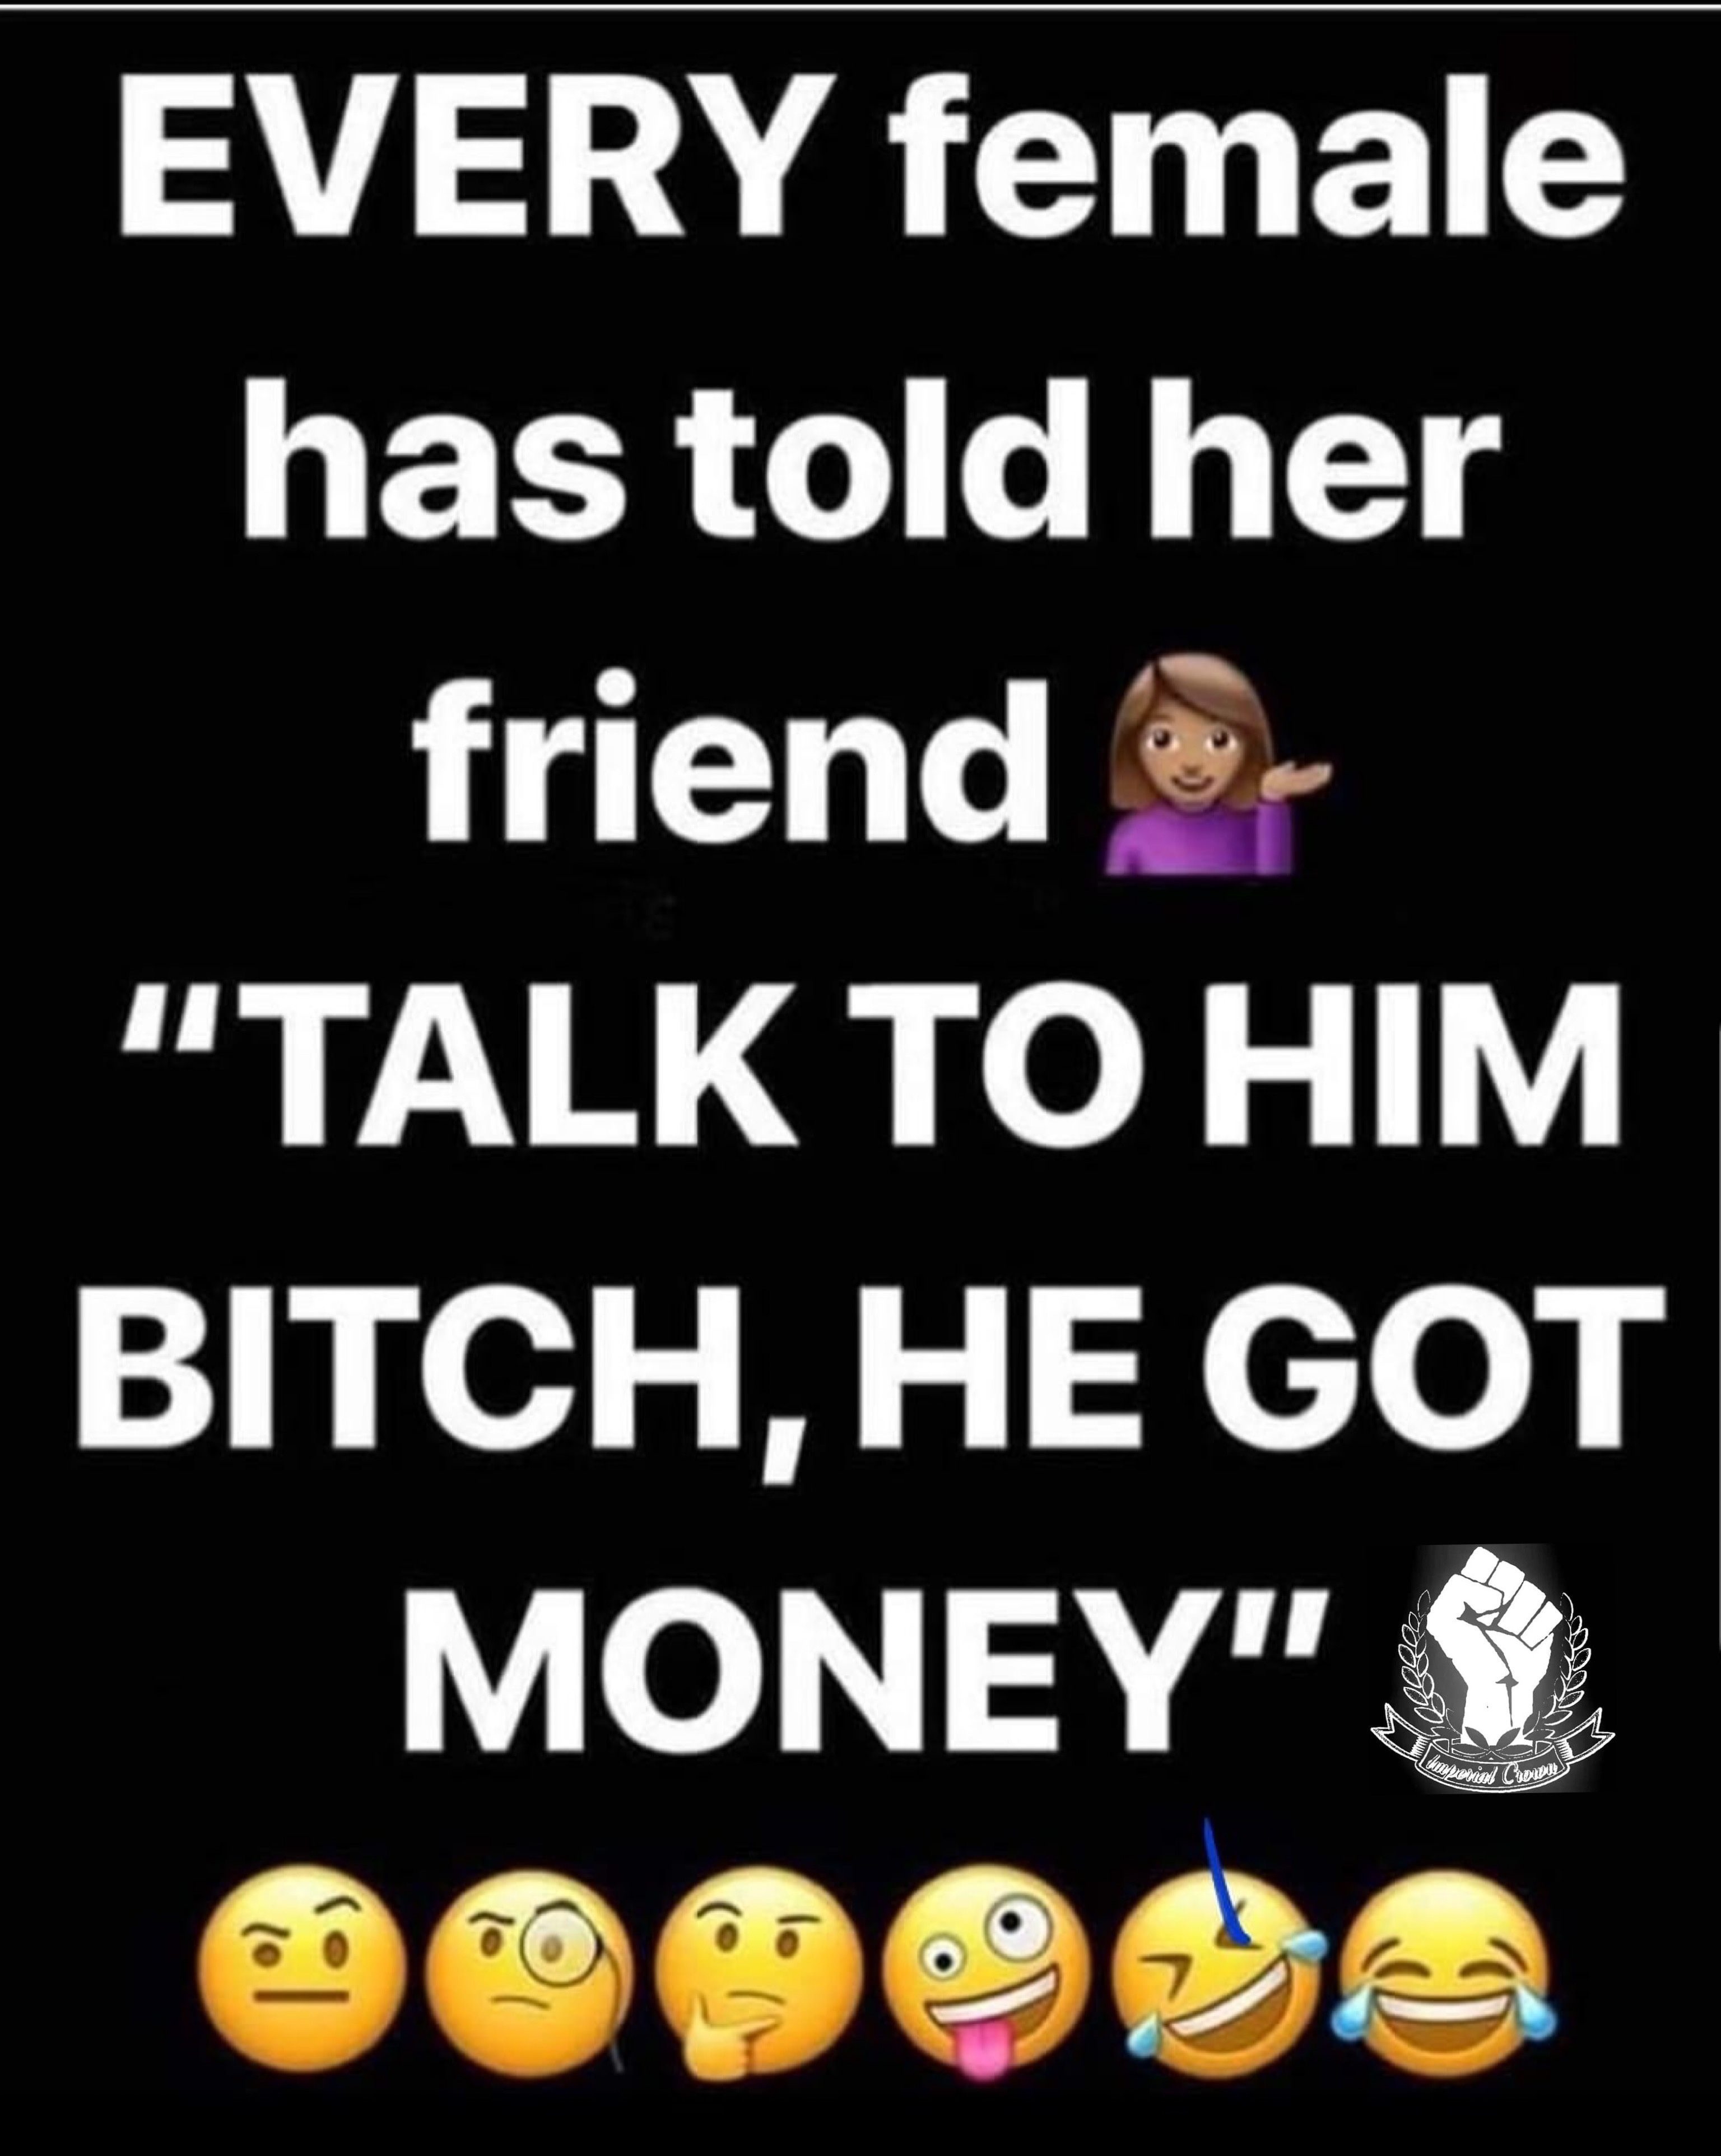 Every female has told her friend talk to him bitch he got money